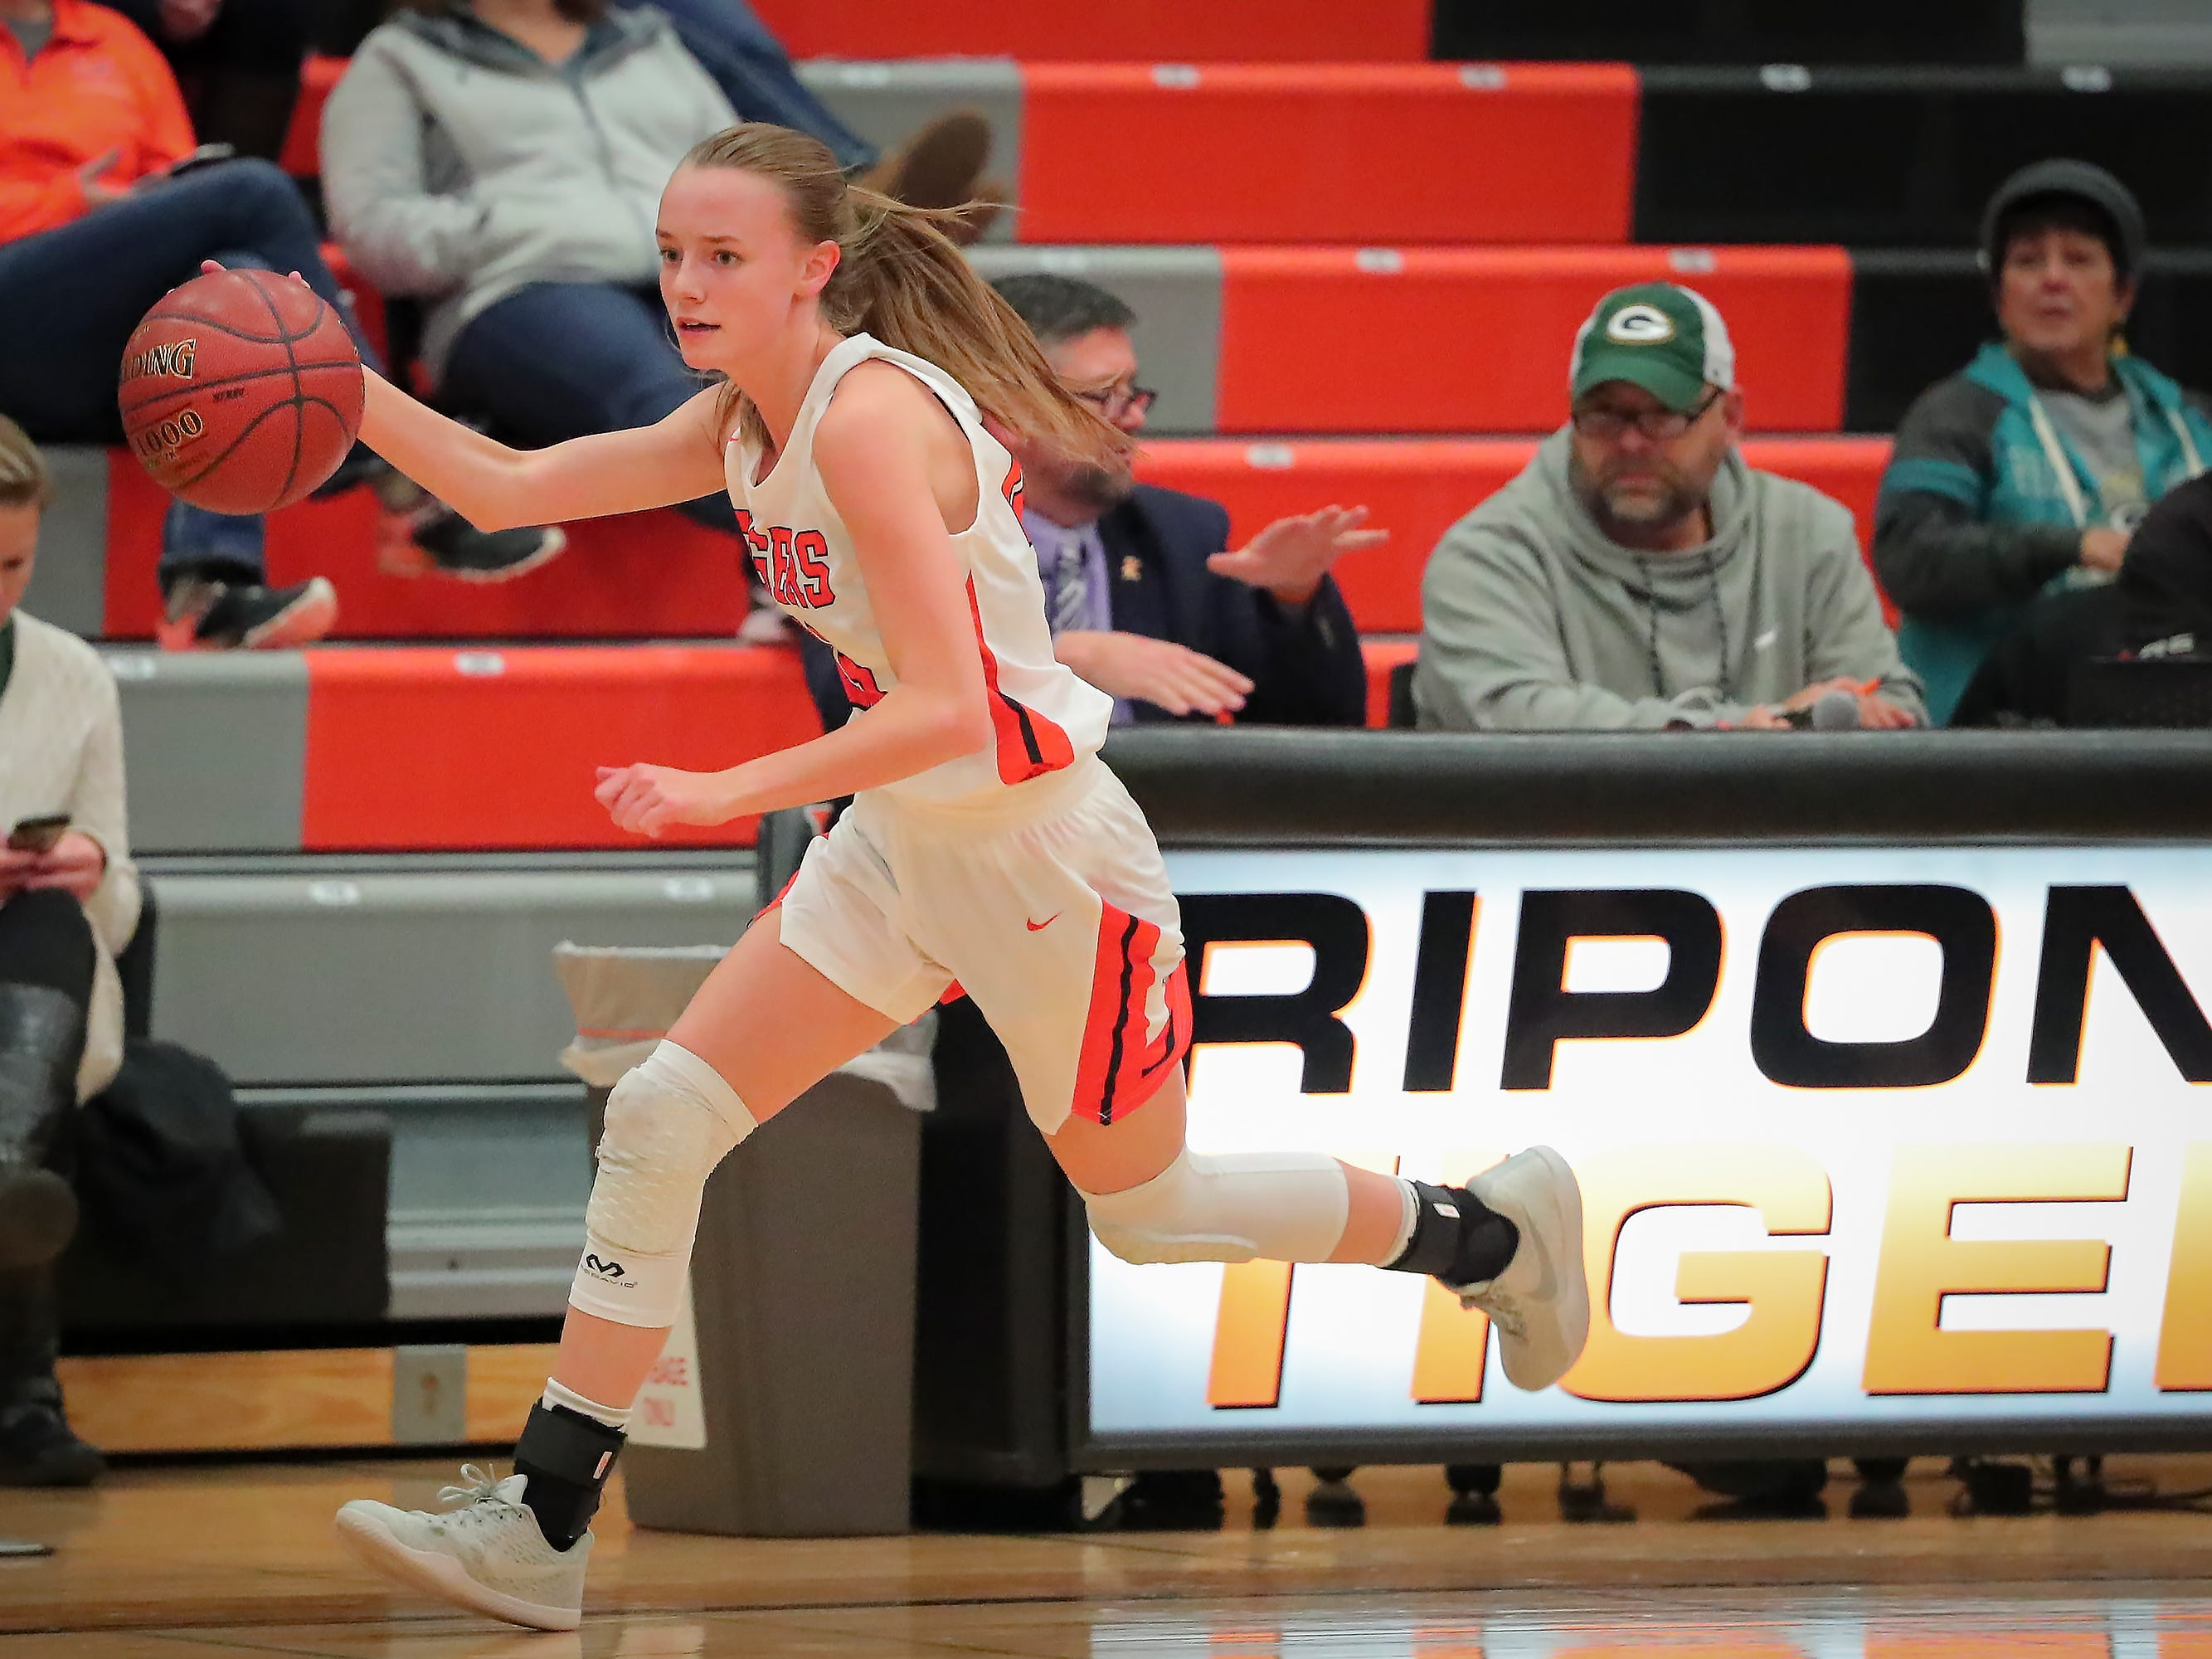 Kerstin Sauerbrei (23) of Ripon drives to the basket after stealing the ball. The Ripon Tigers hosted the North Fond du Lac Orioles in a non-conference basketball game Thursday evening, November 15, 2018.